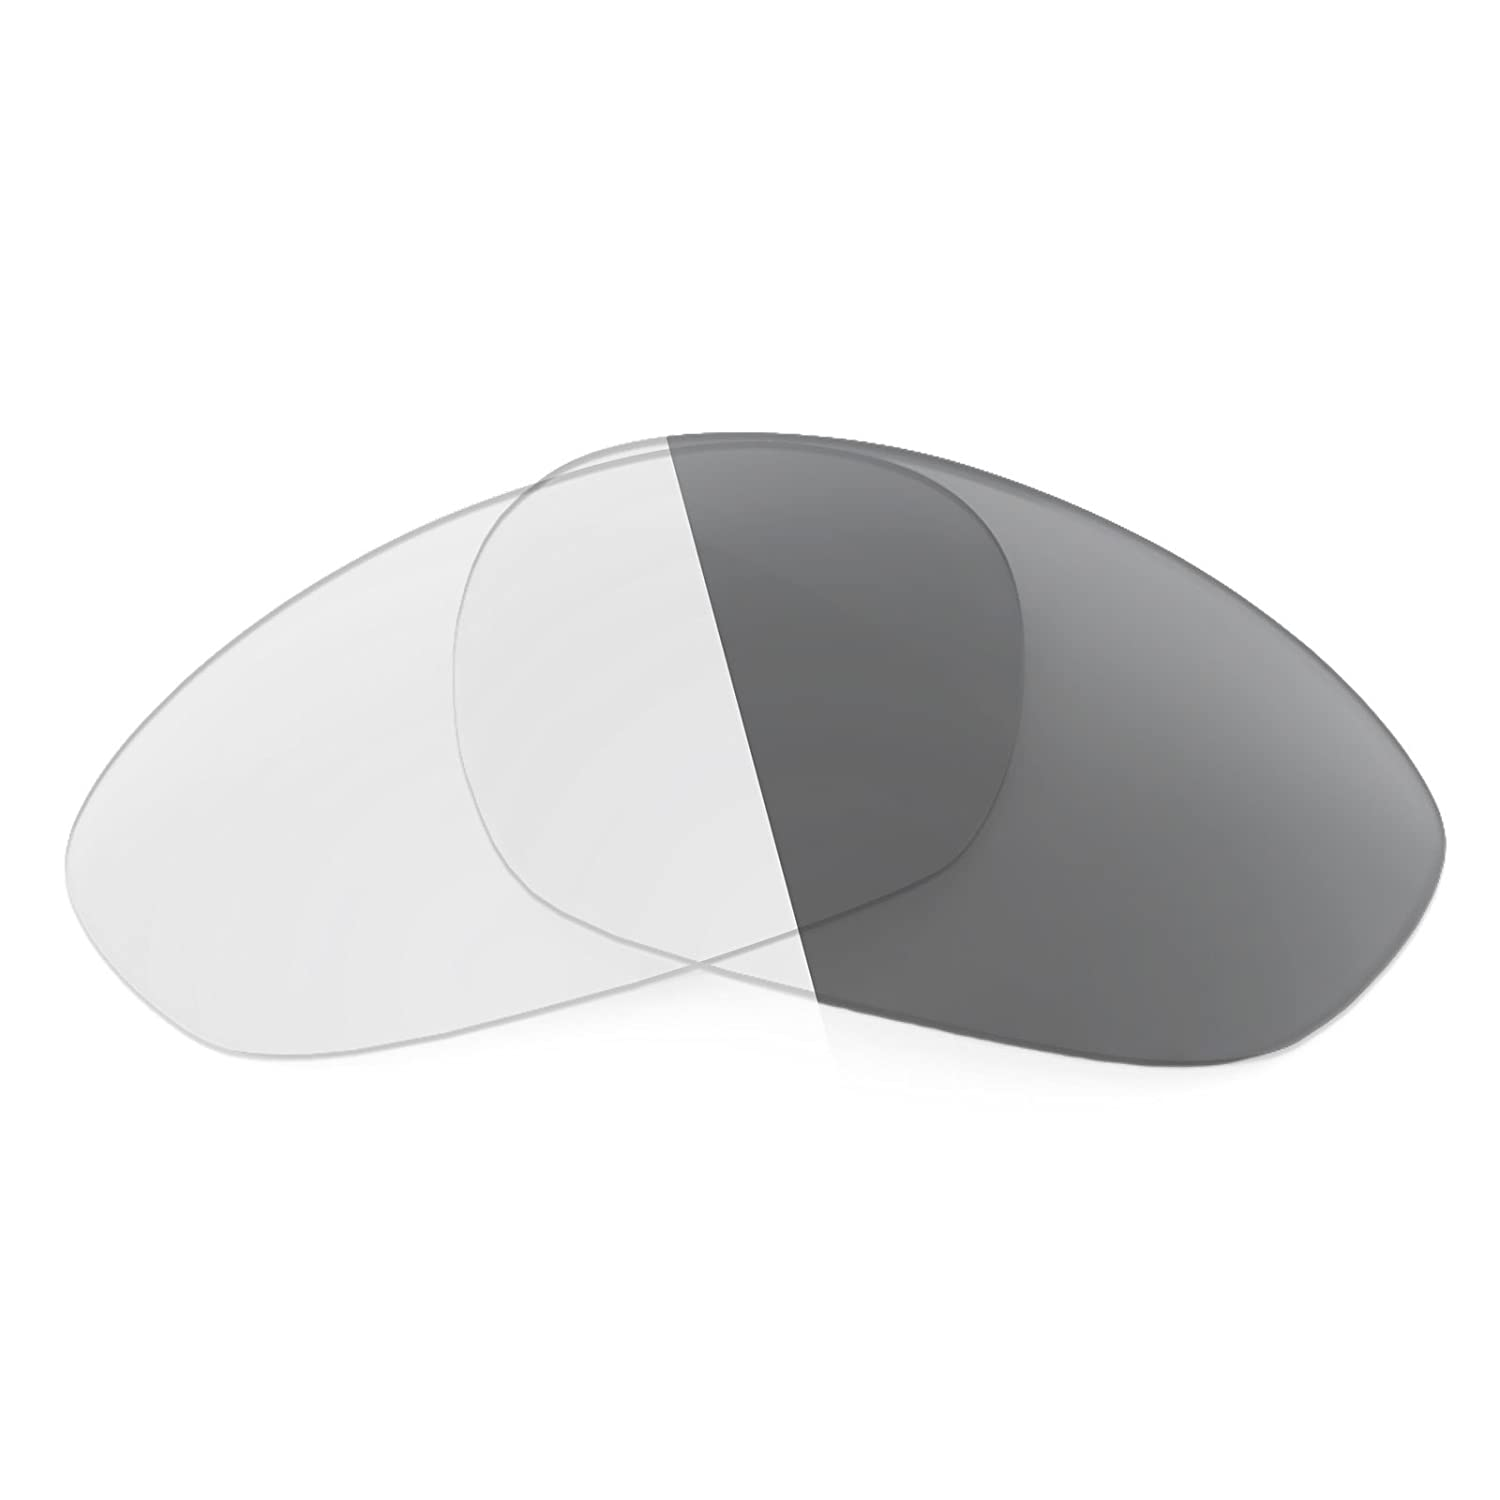 0eb885a8b06b Amazon.com: Revant Replacement Lenses for Oakley Minute 2.0 Elite Adapt  Grey Photochromic: Sports & Outdoors